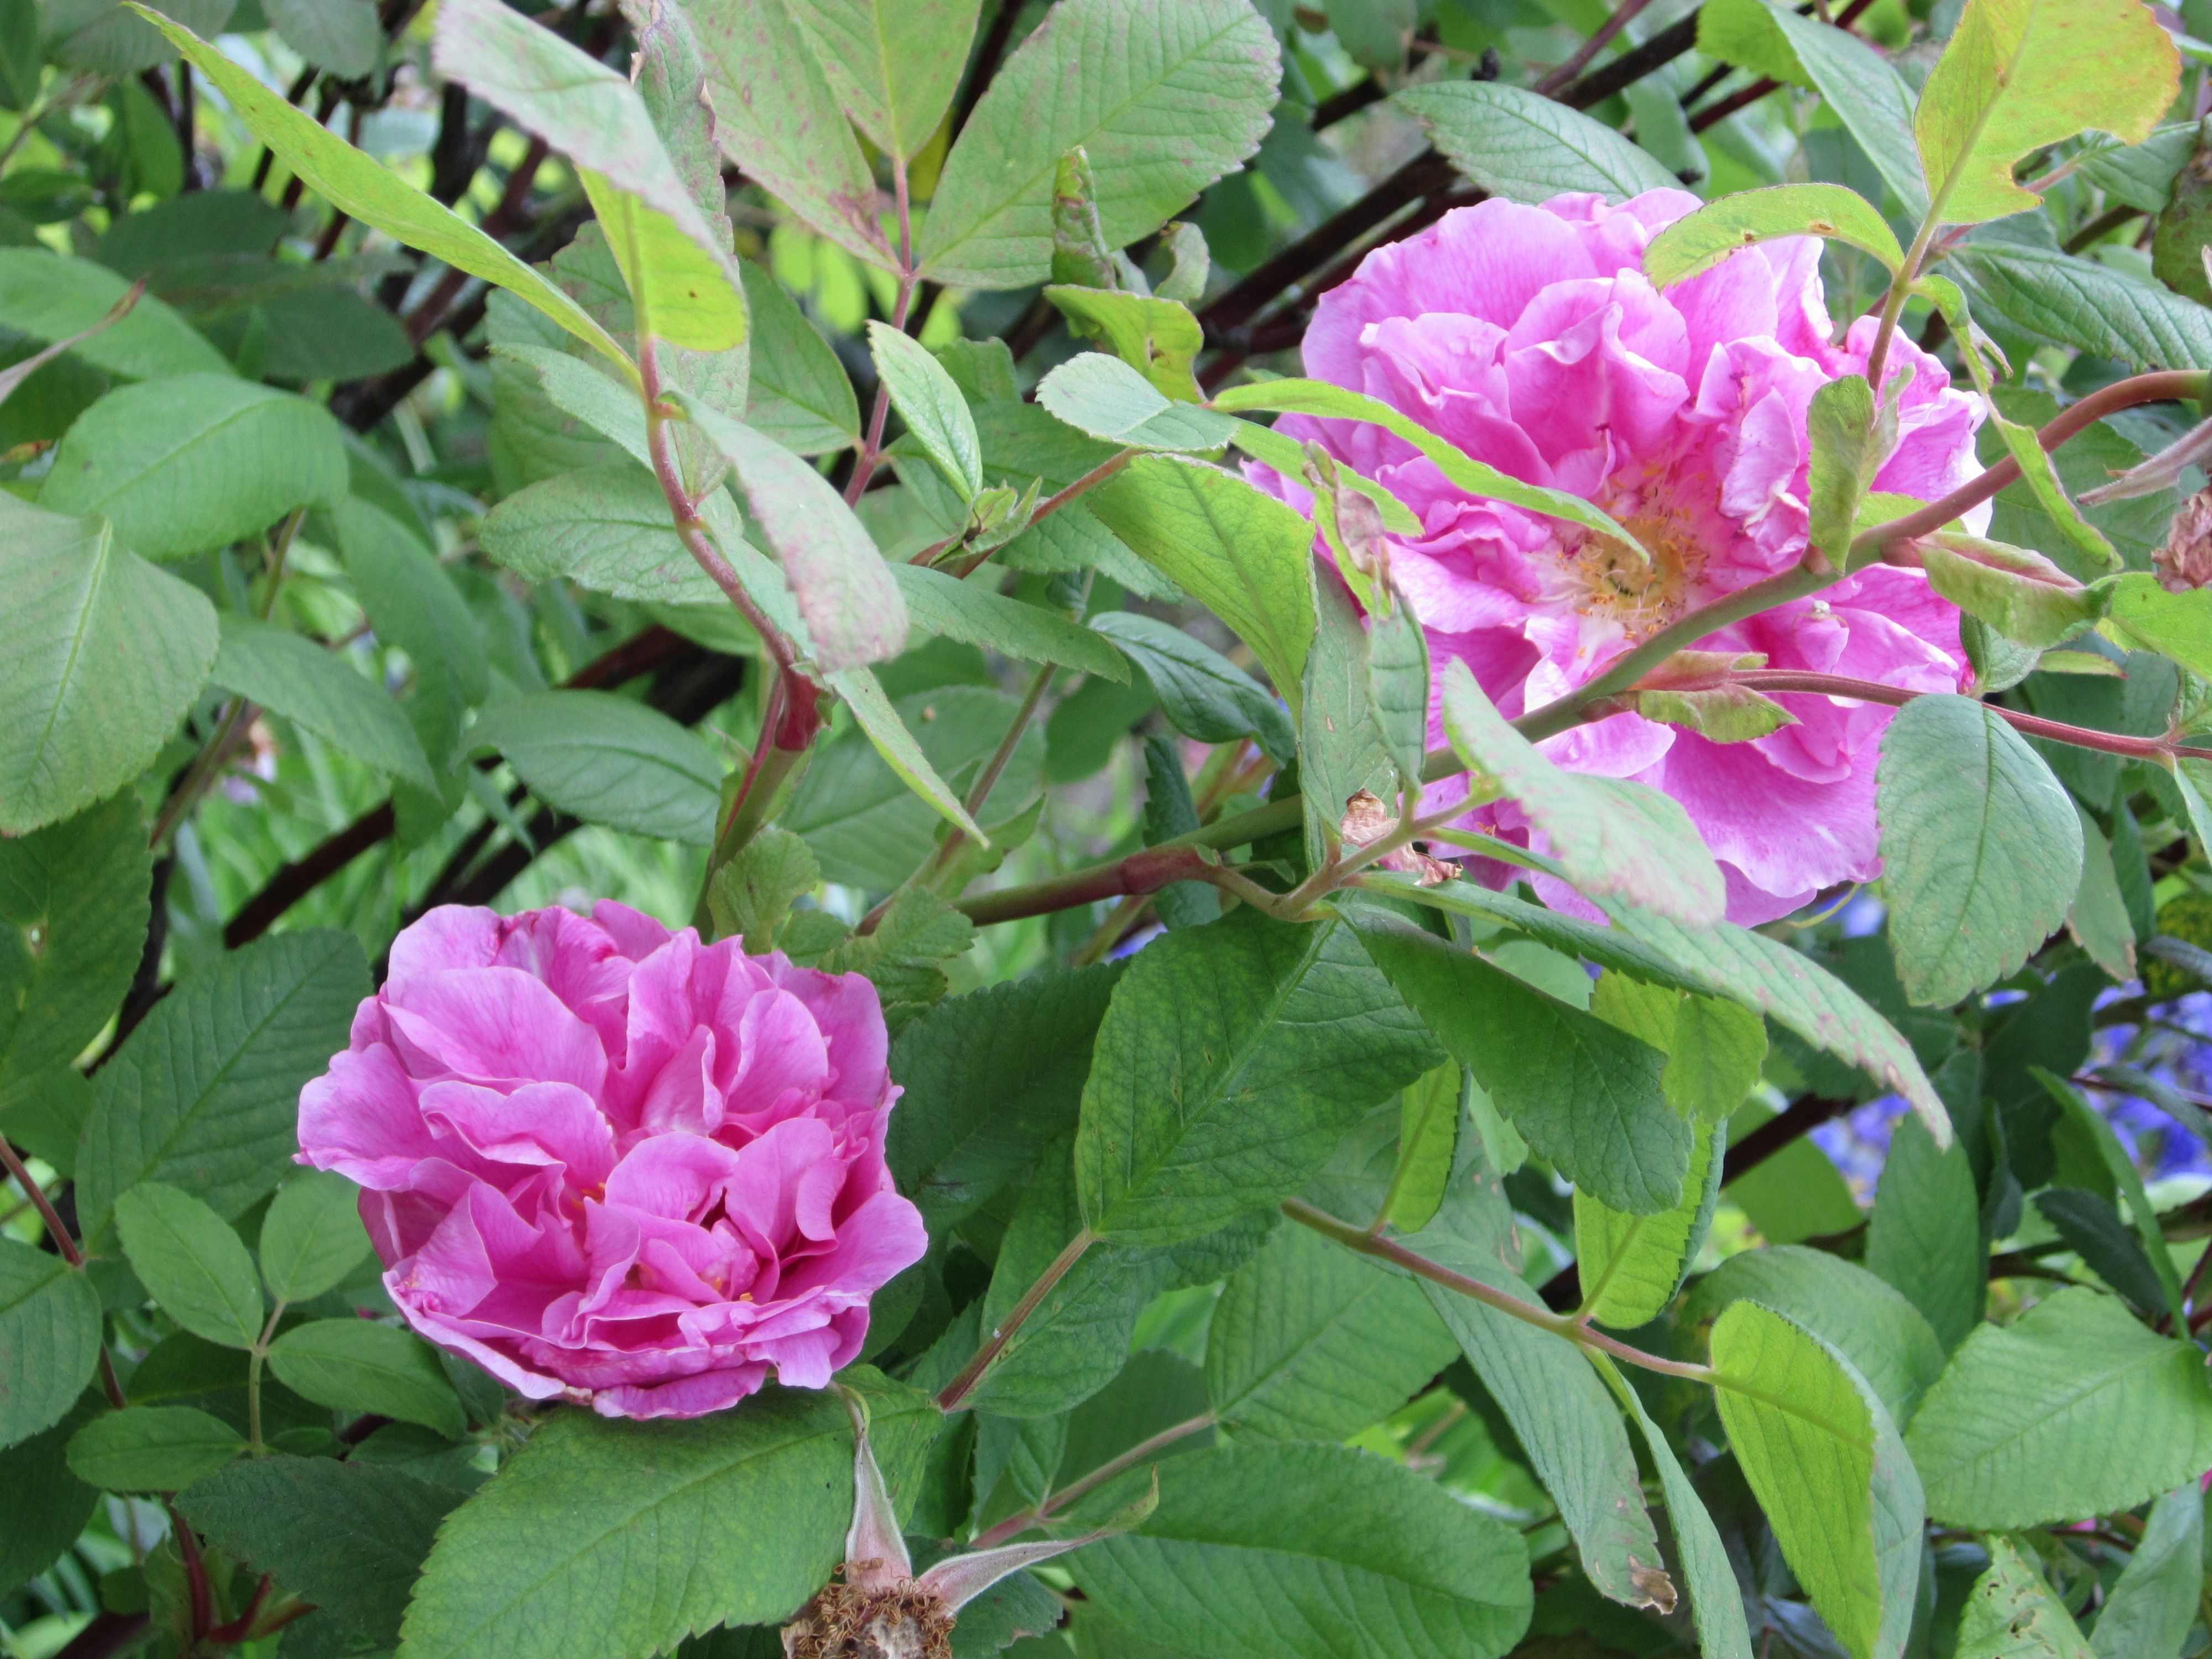 Rosa `Therese bugnet´